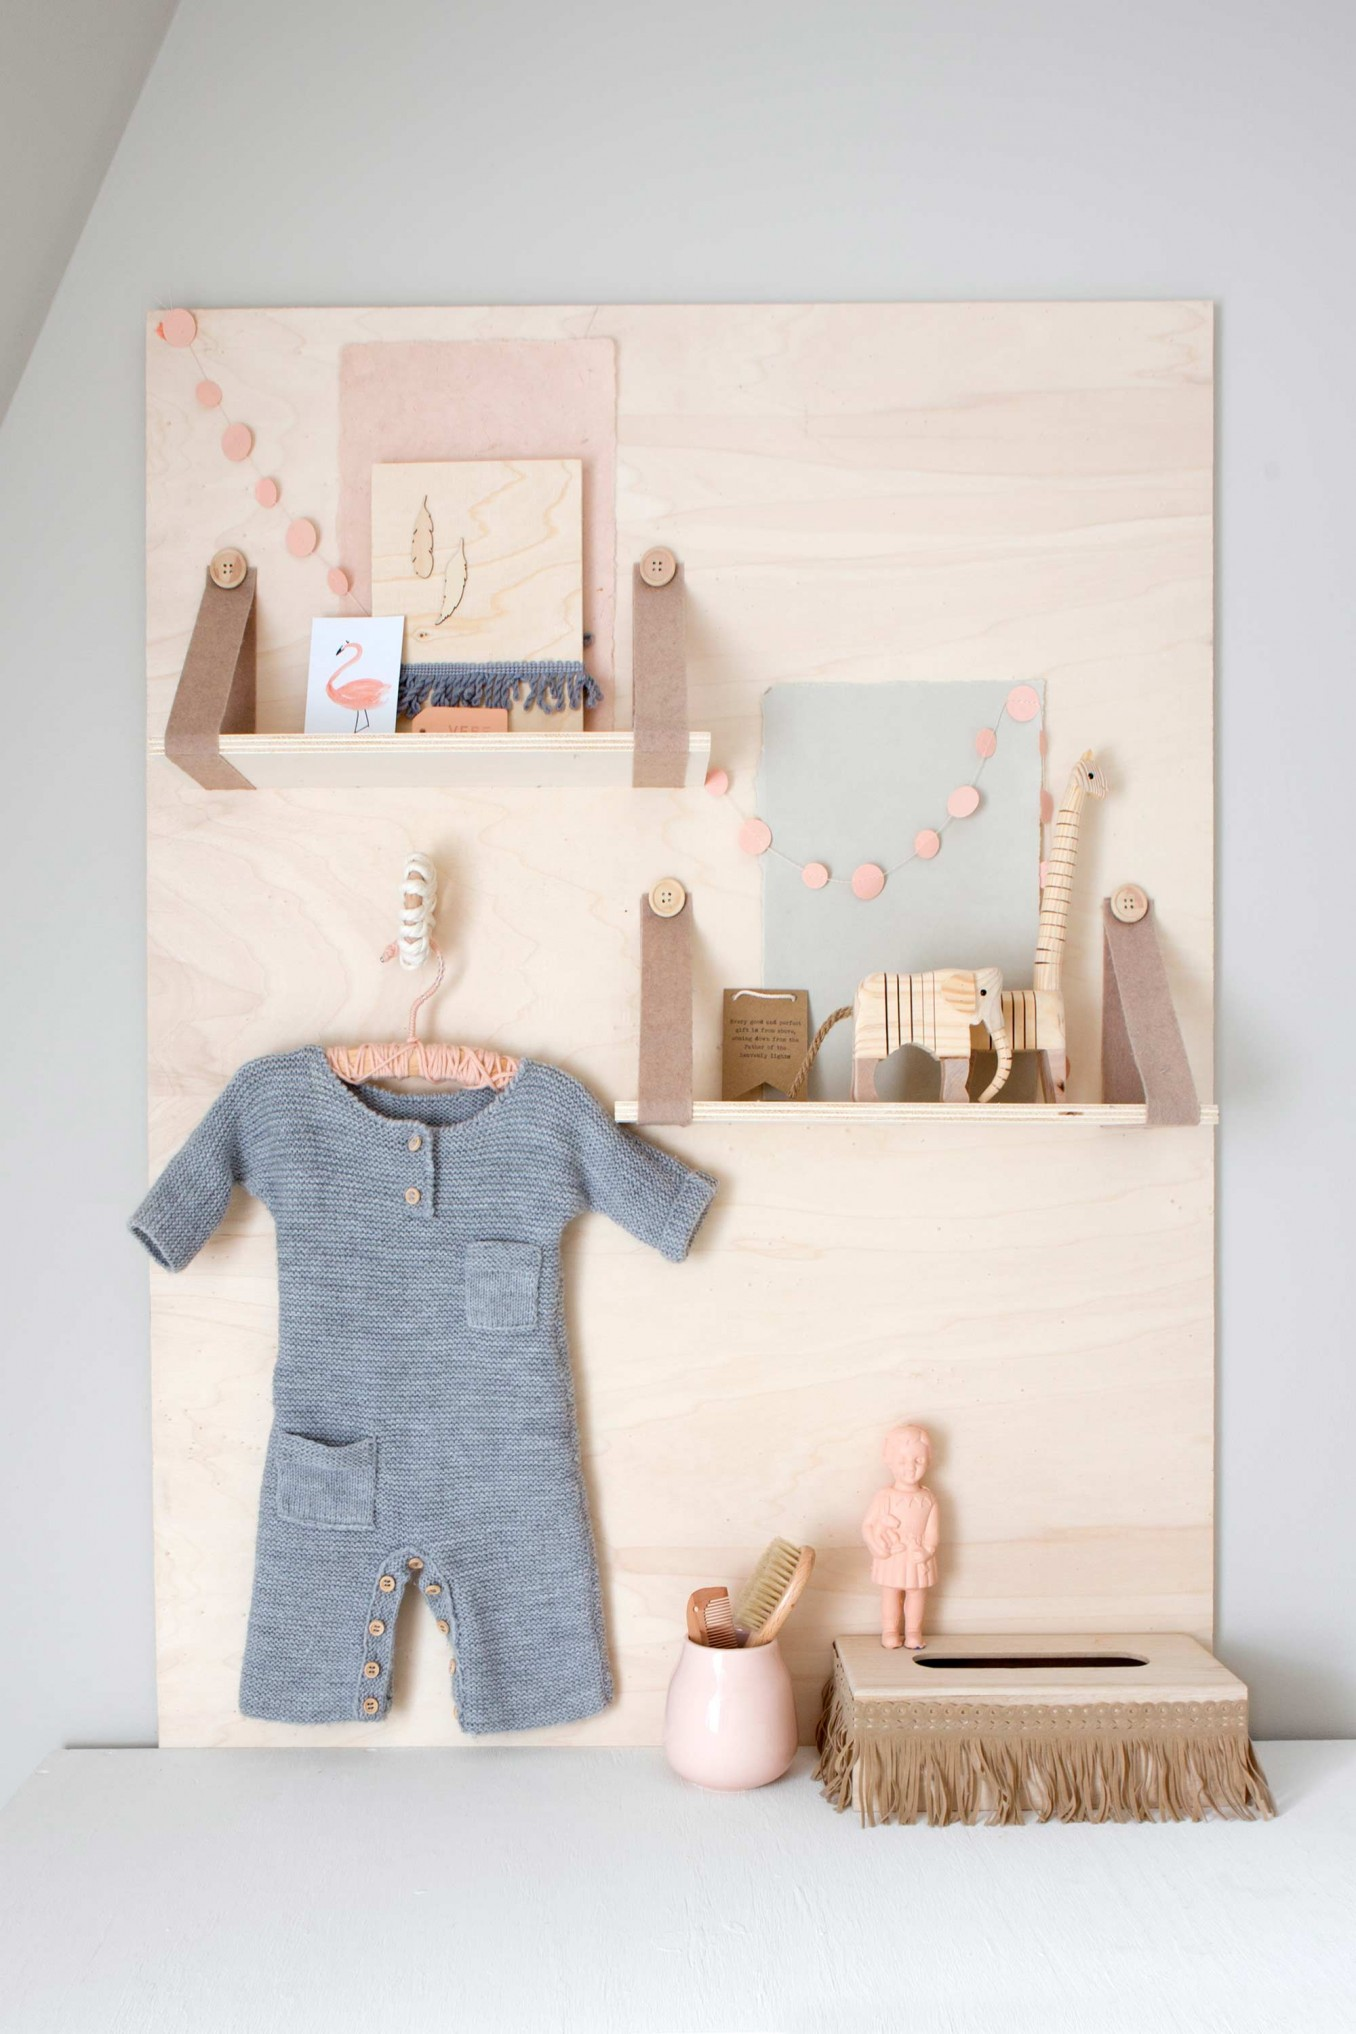 Awesome 5 Fun Shelf Ideas For A Kids Room (that You Can DIY)